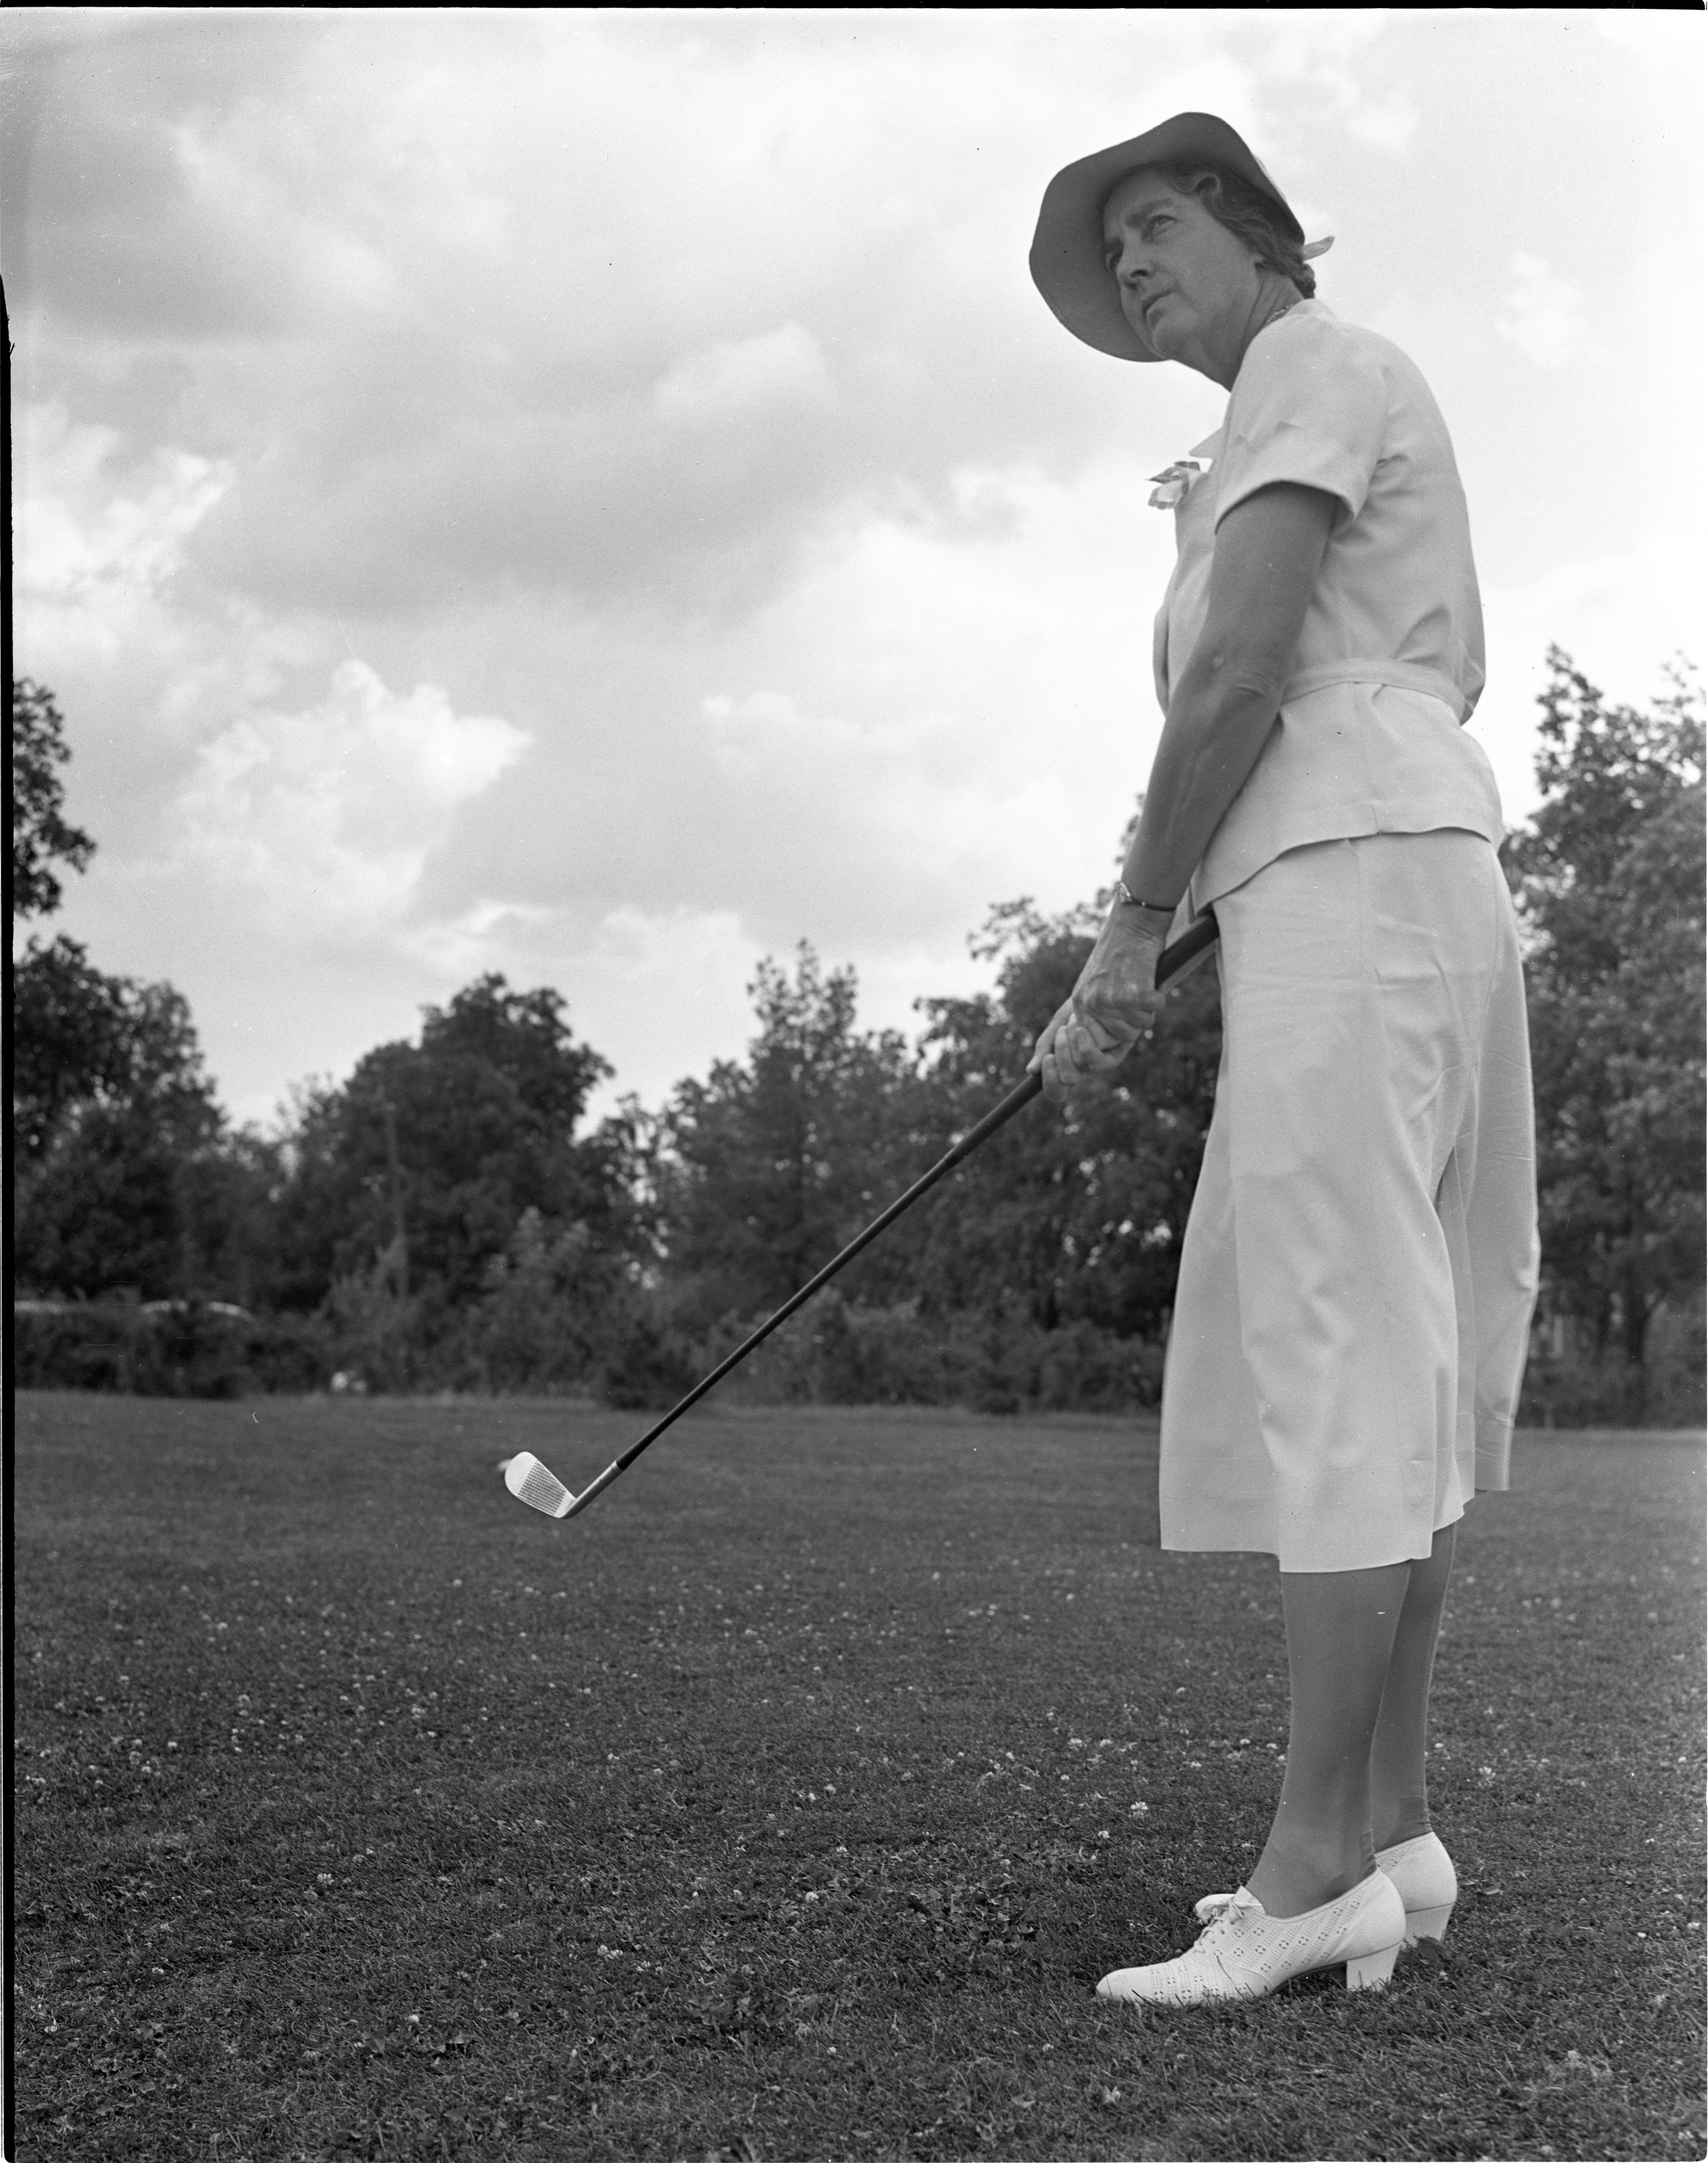 DeEtta Forsythe In The Women's City Golf Tournament Qualifying Rounds At Barton Hills, July 1939 image